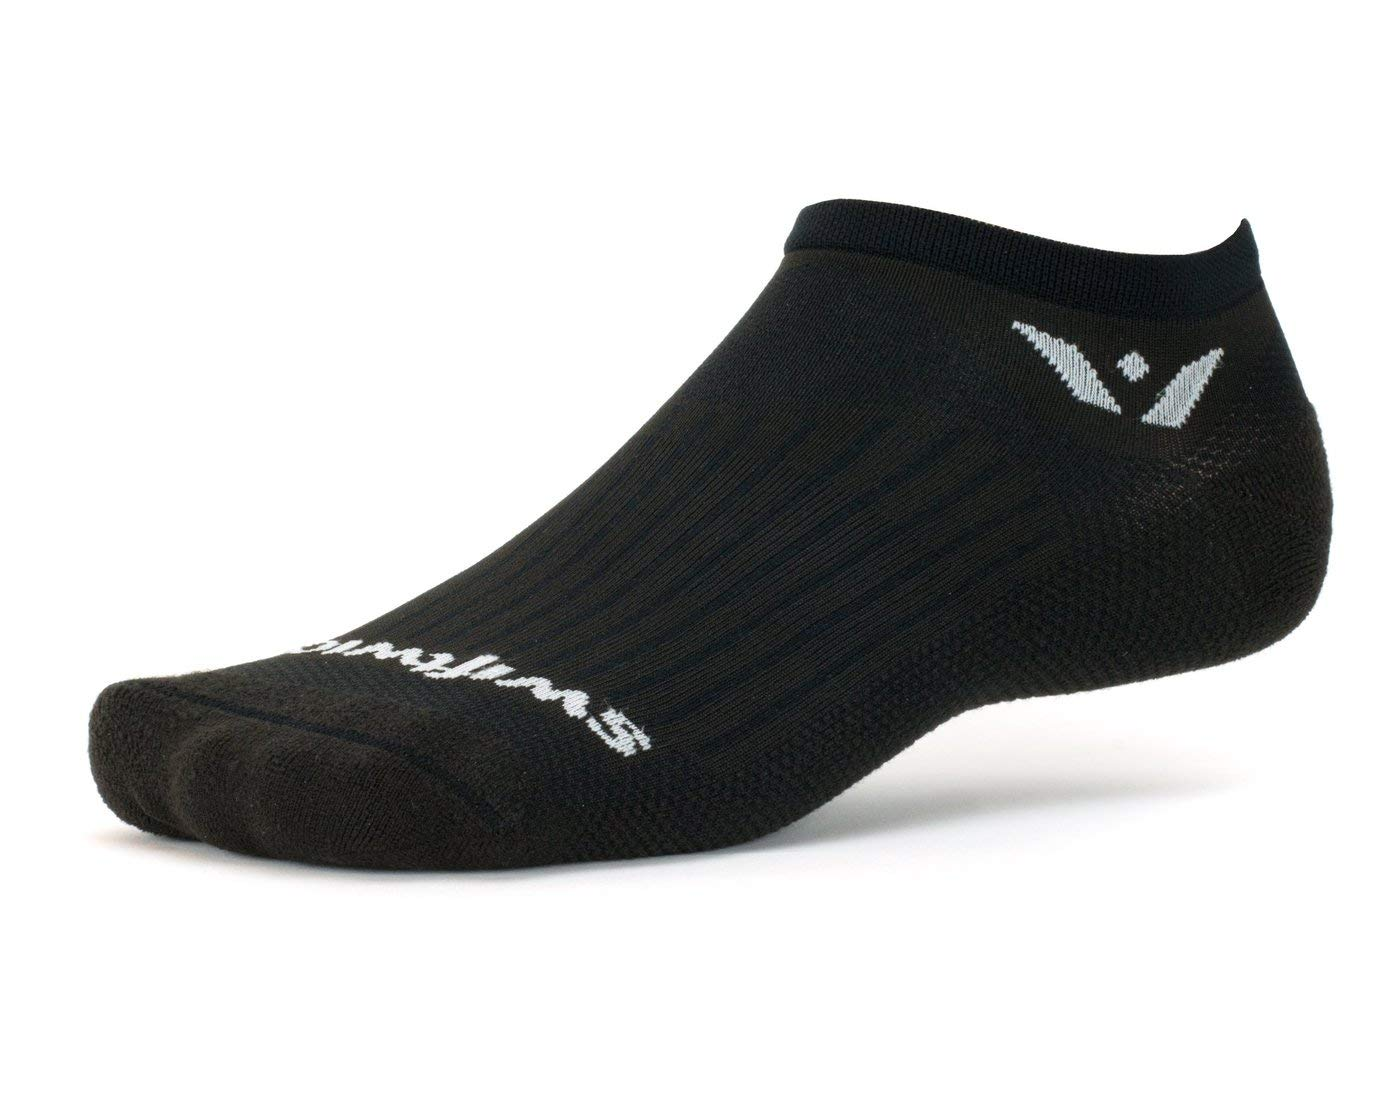 Fast Drying Firm Compression No Show Socks Socks Built for Running /& Cycling Swiftwick- Aspire Zero